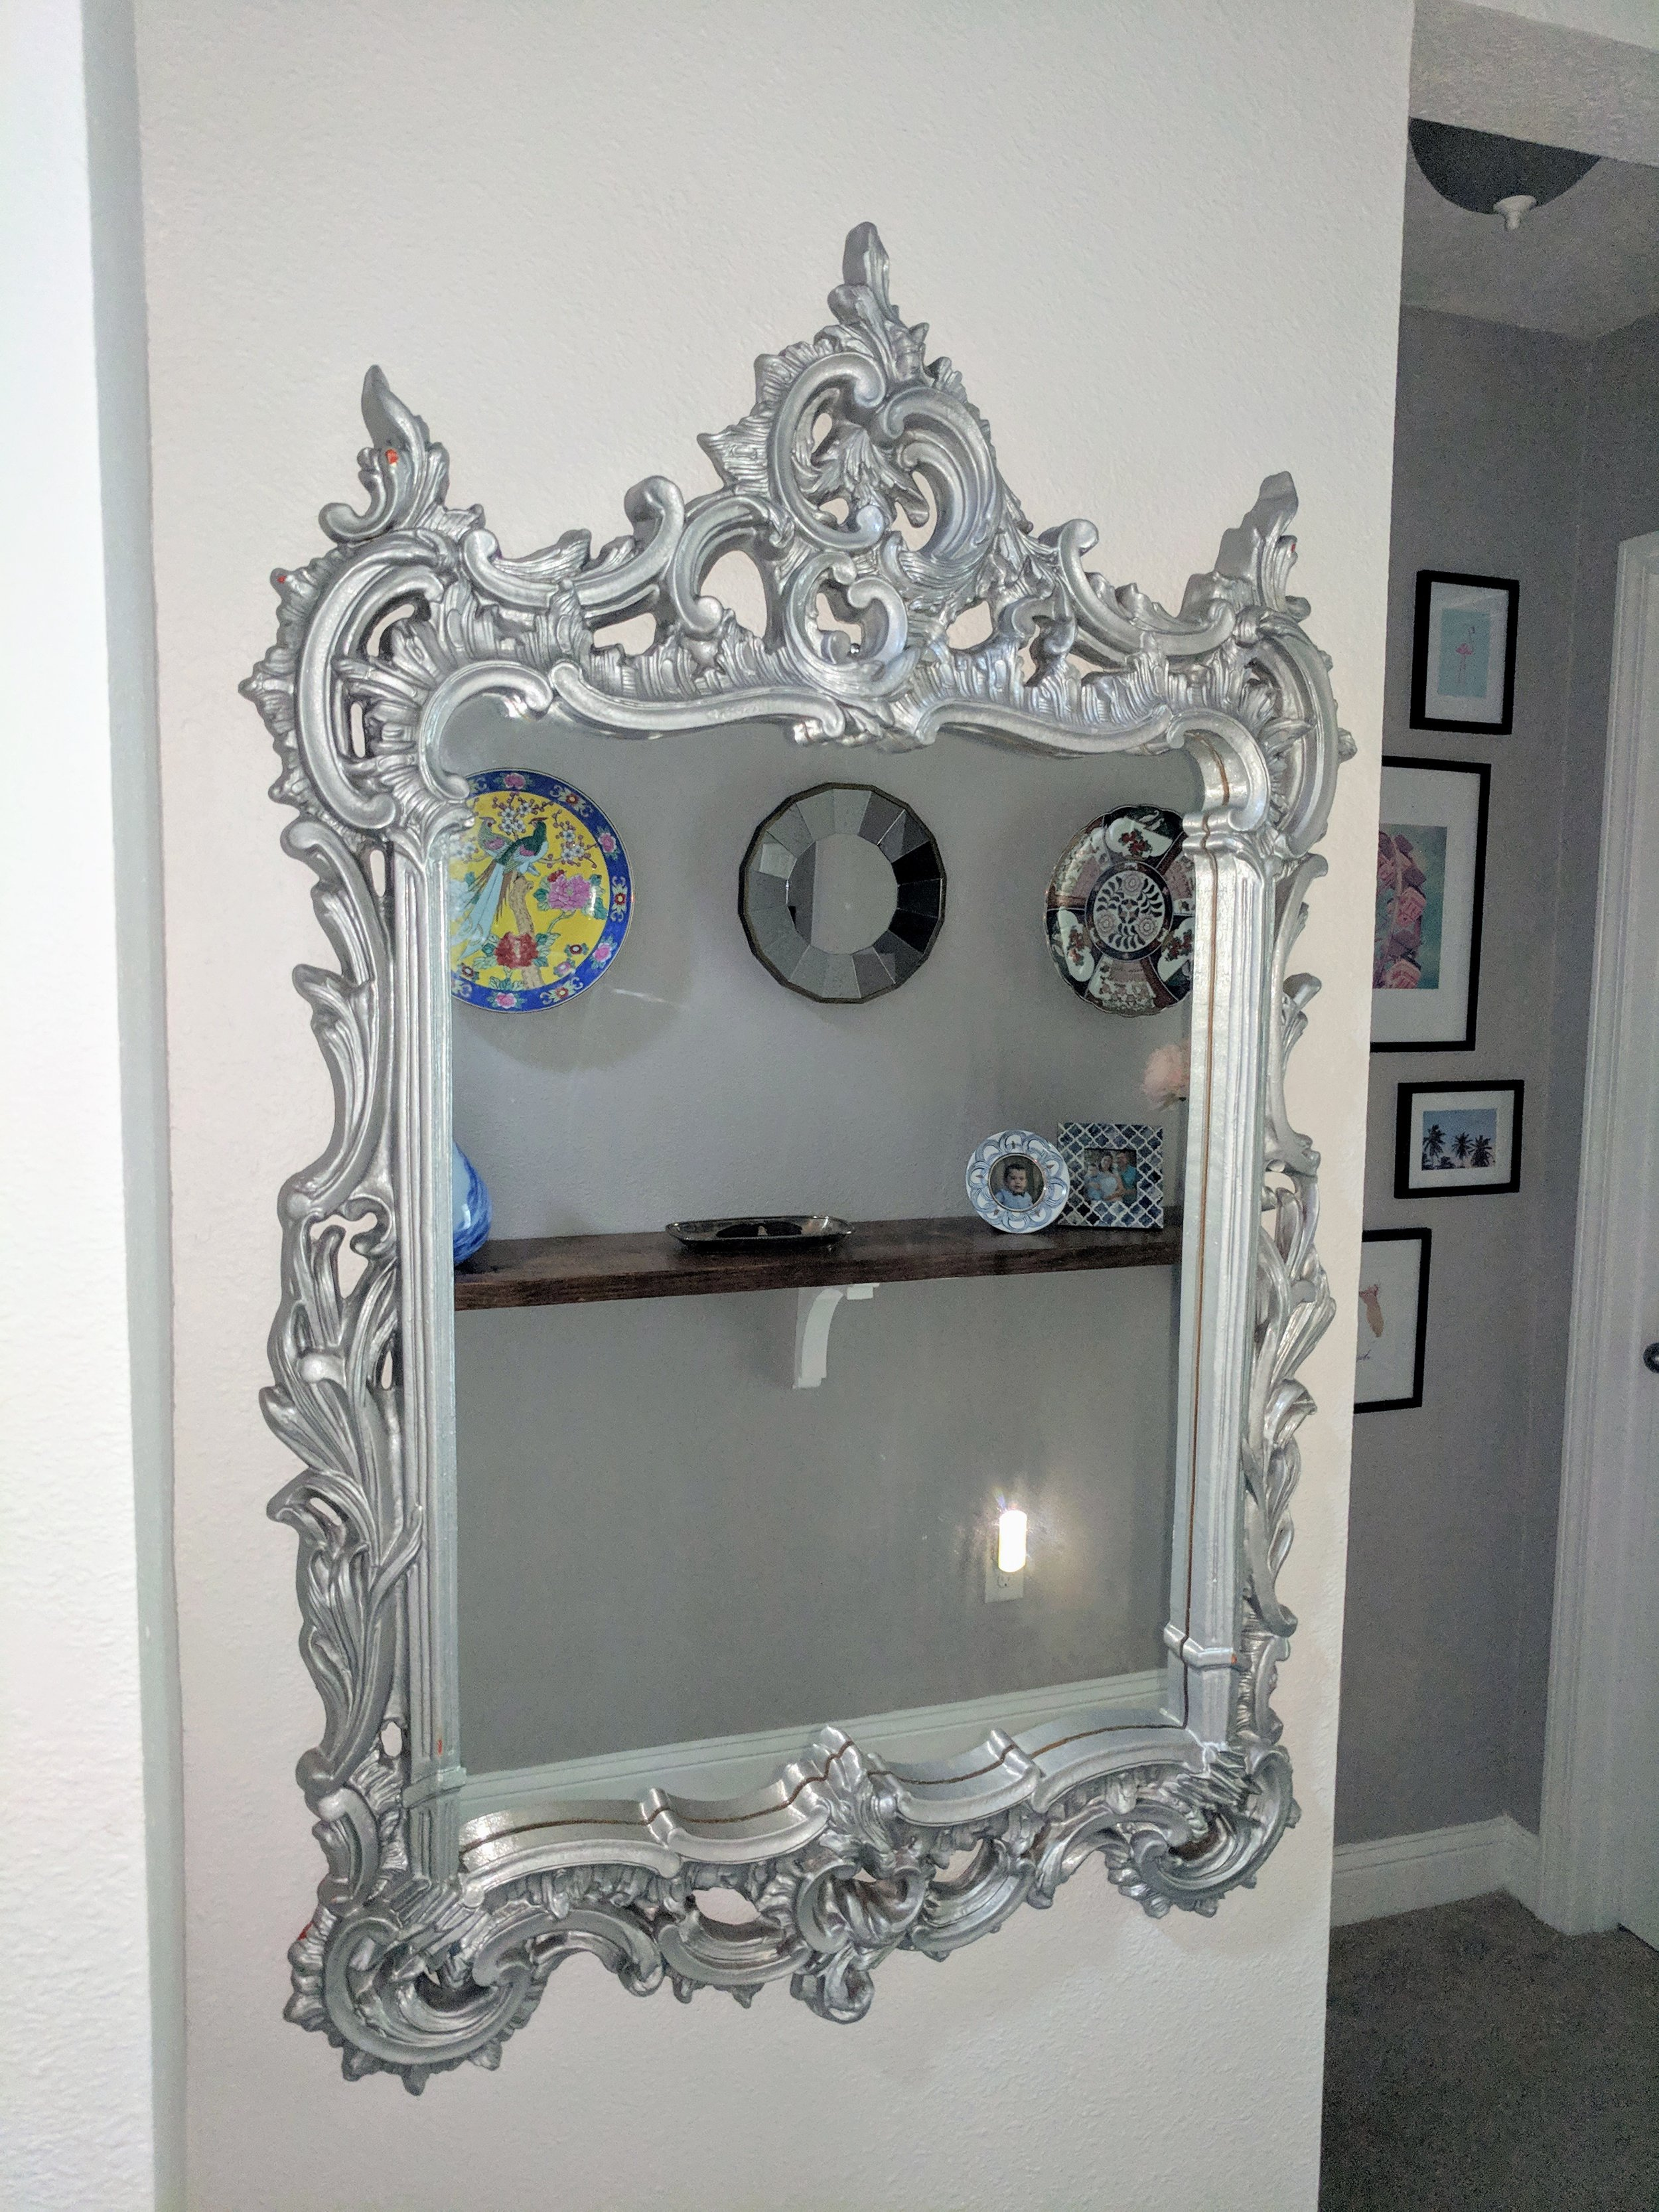 What the mirror looked like before